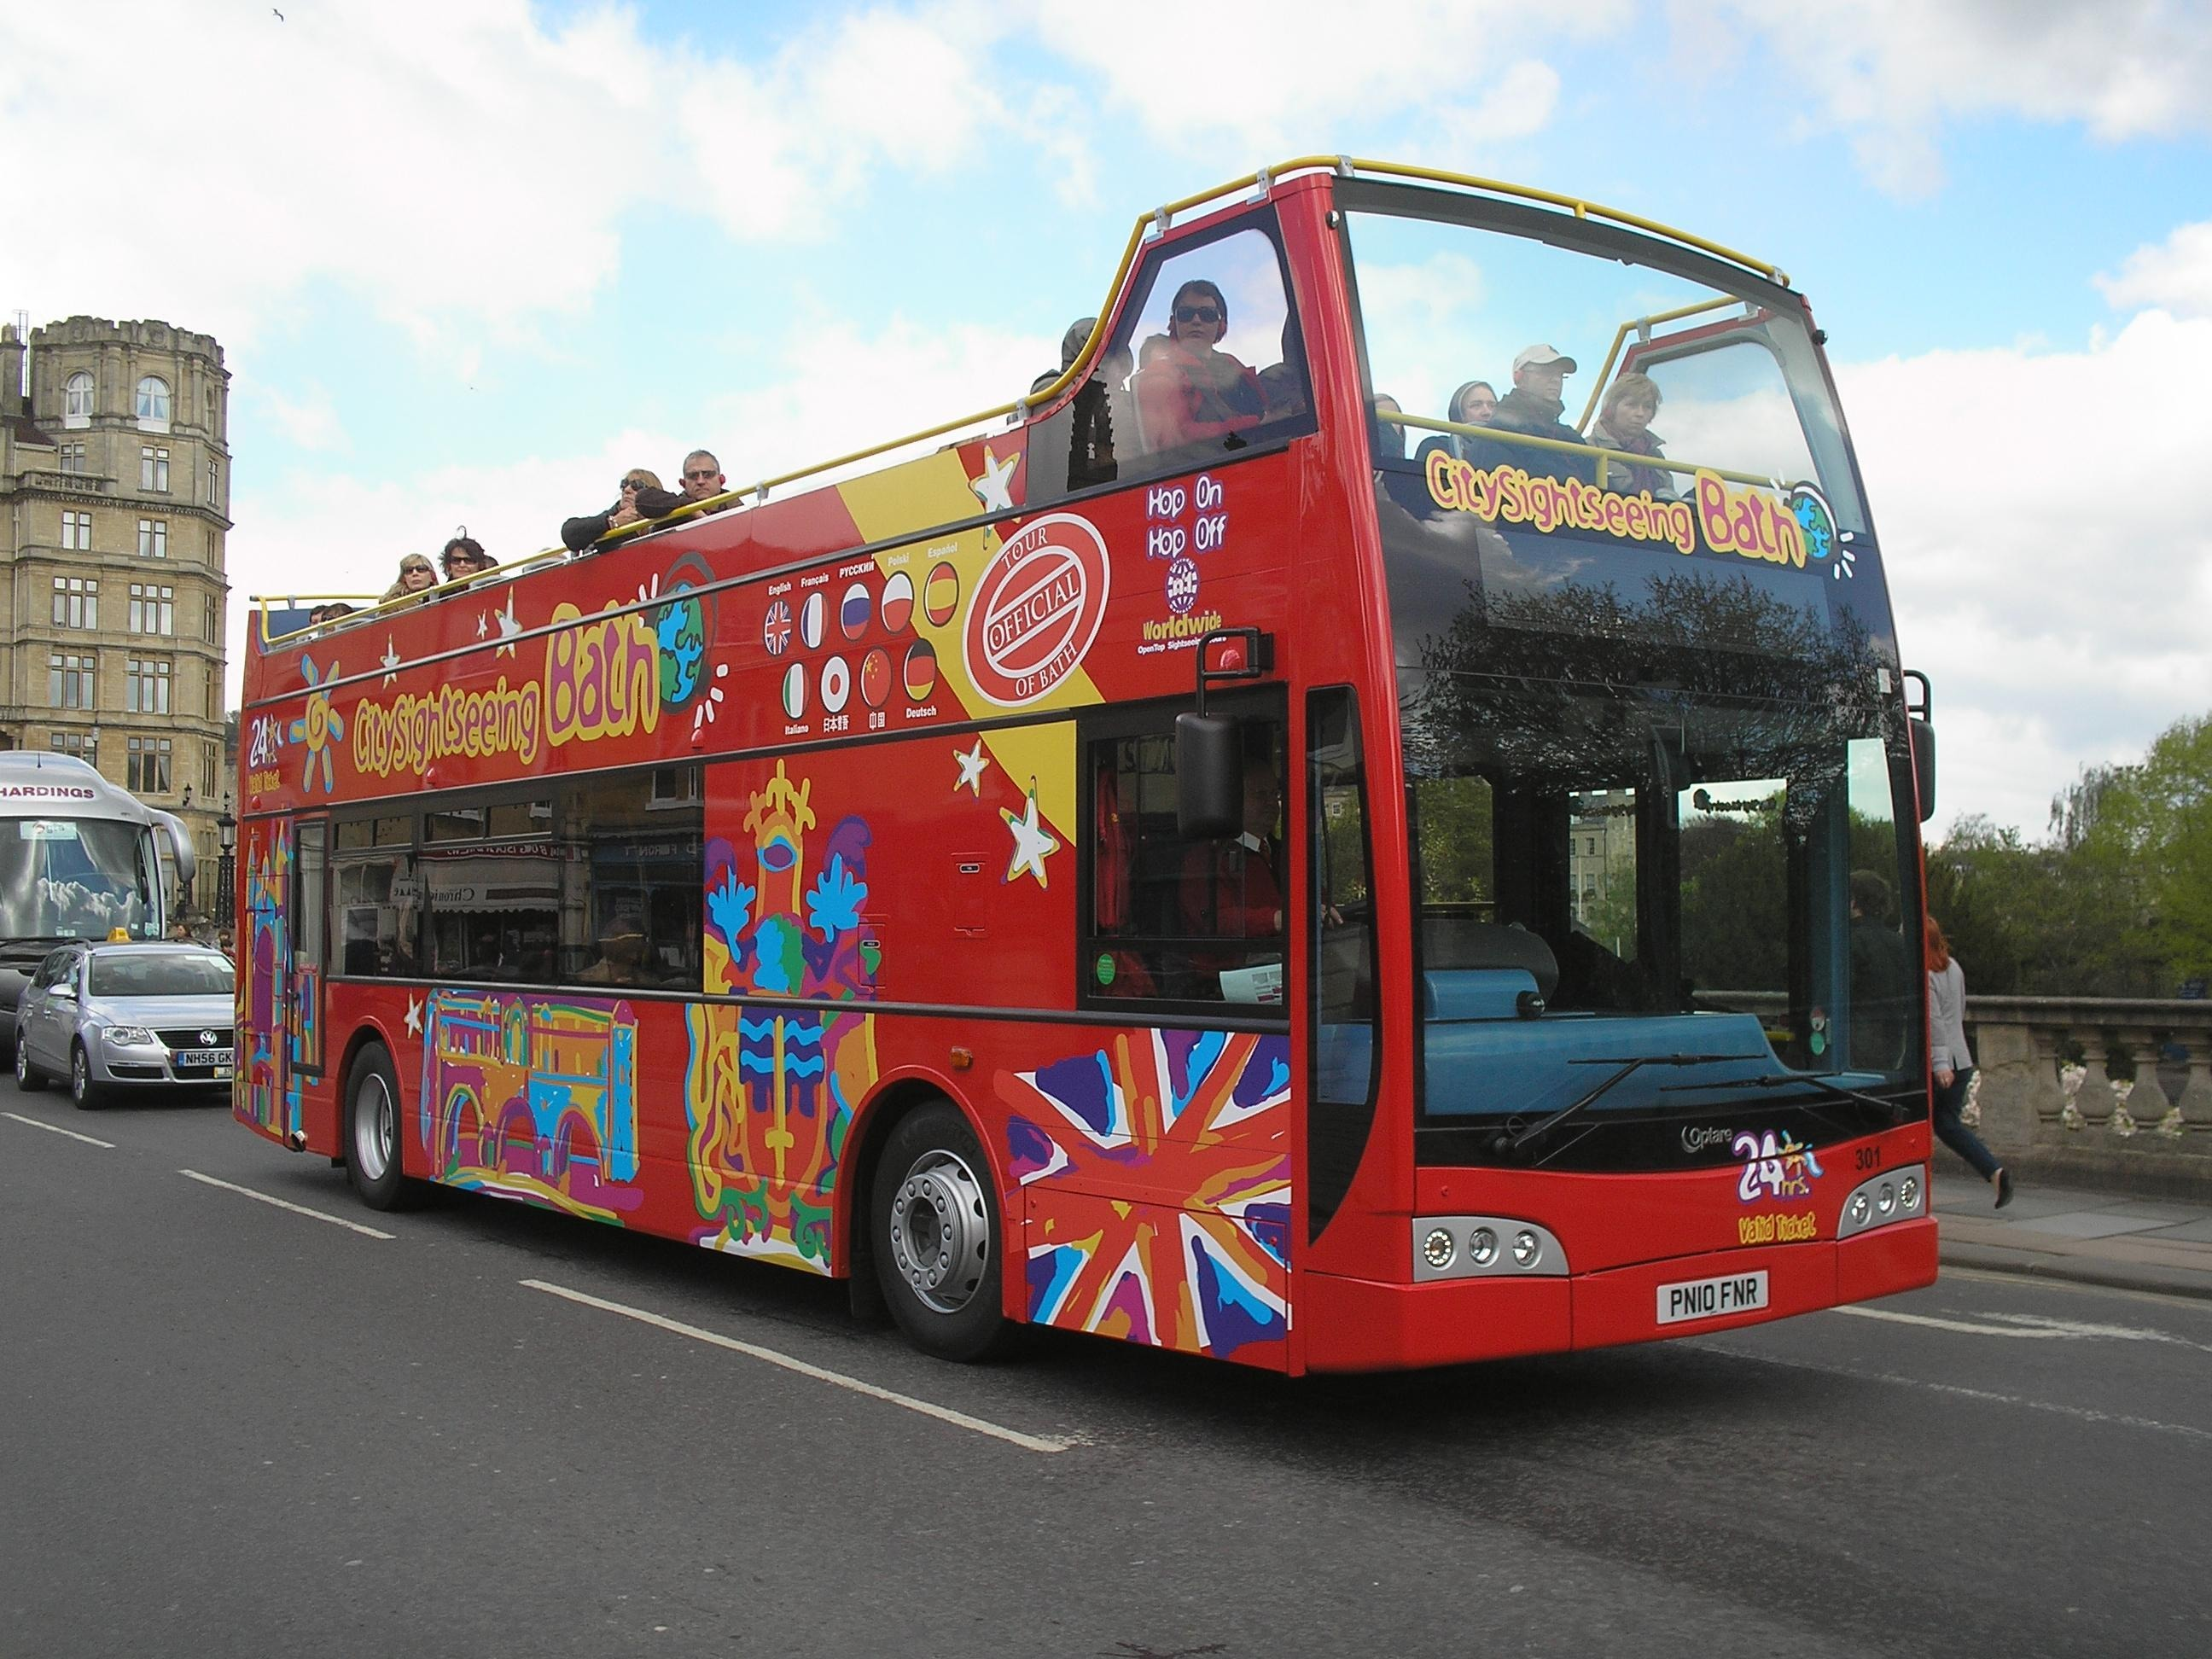 City Sightseeing Tours in the United Kingdom